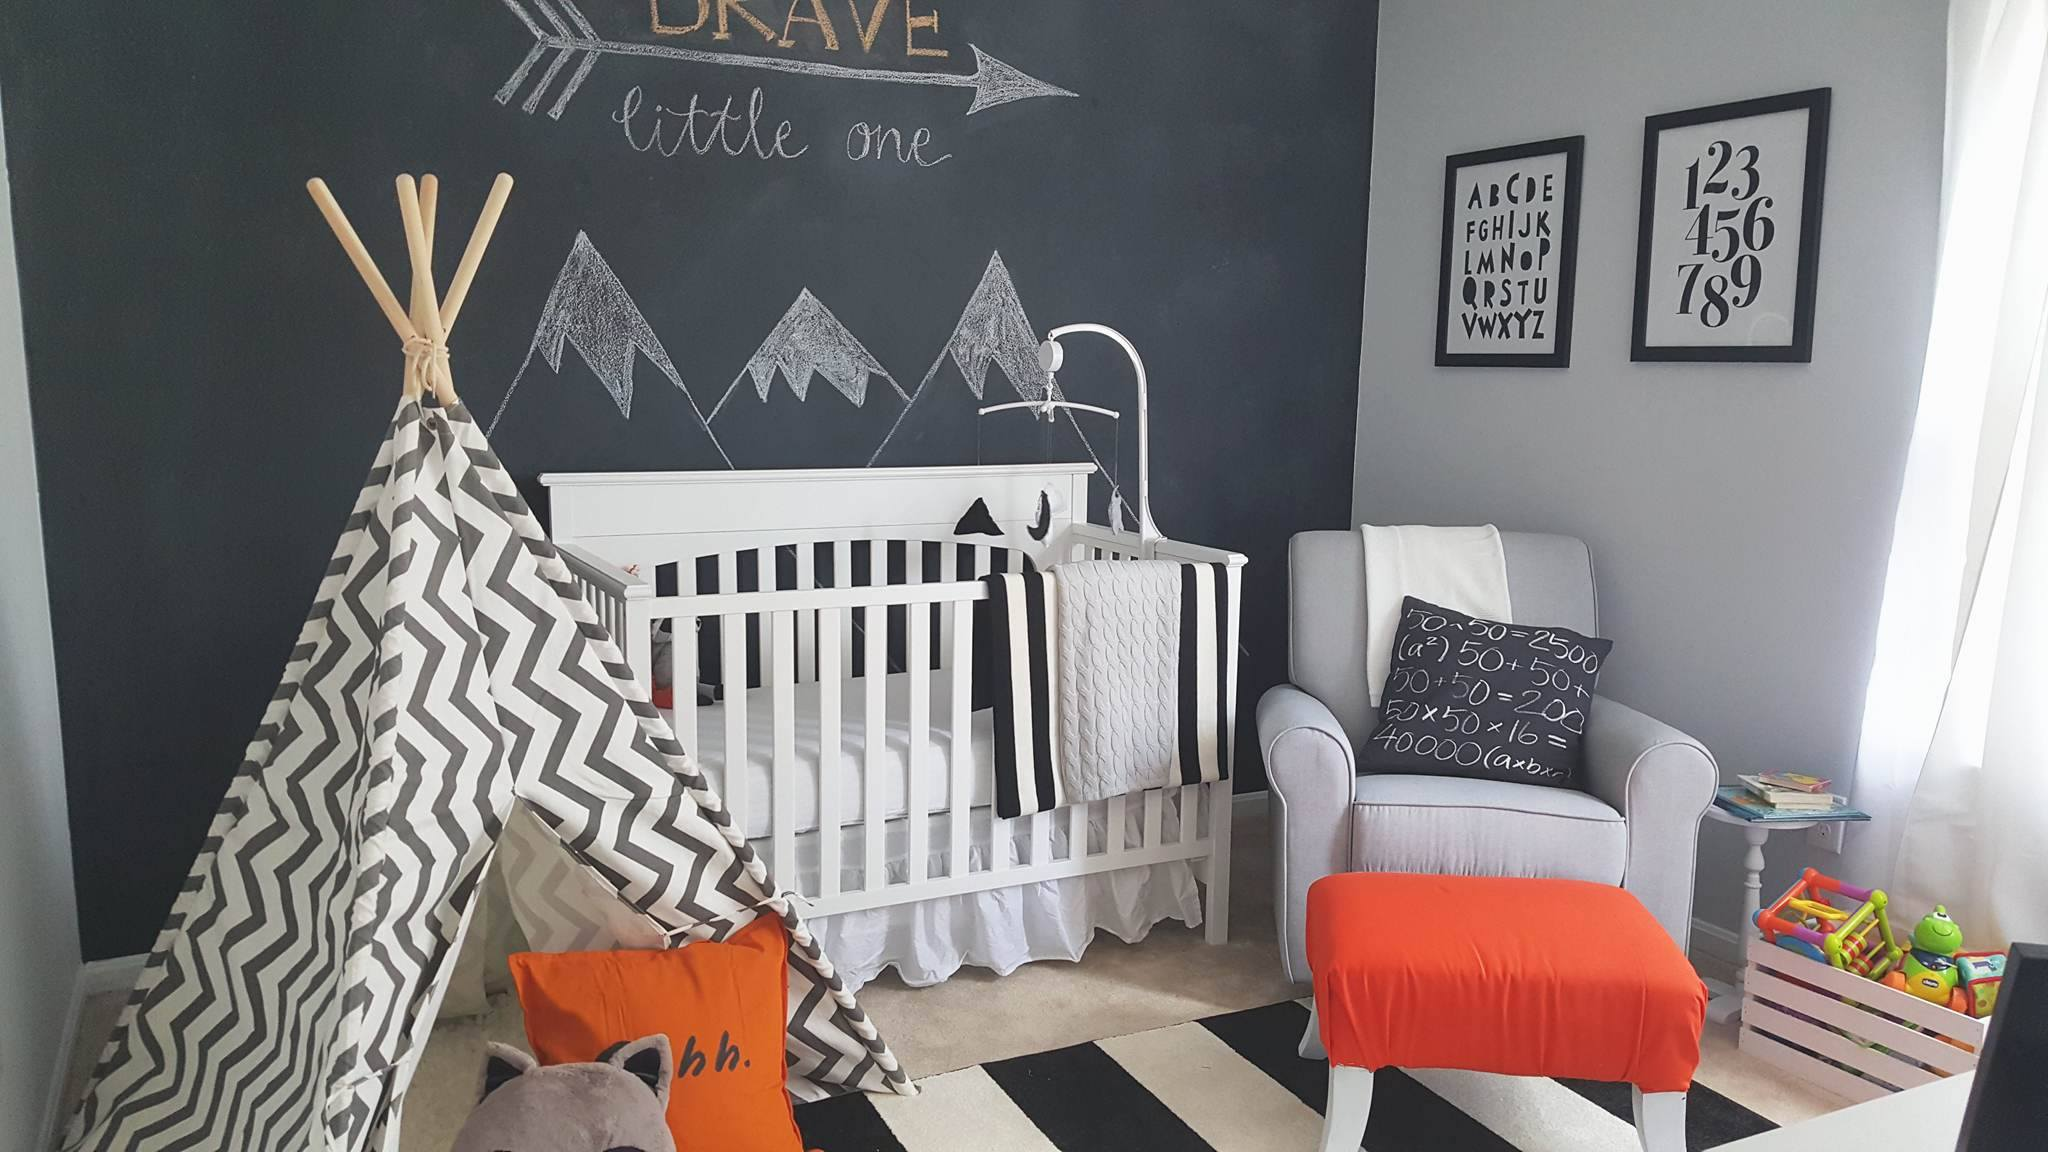 Fun Bedroom Decorating Ideas Black White And Grey Theme Nursery Inspiration